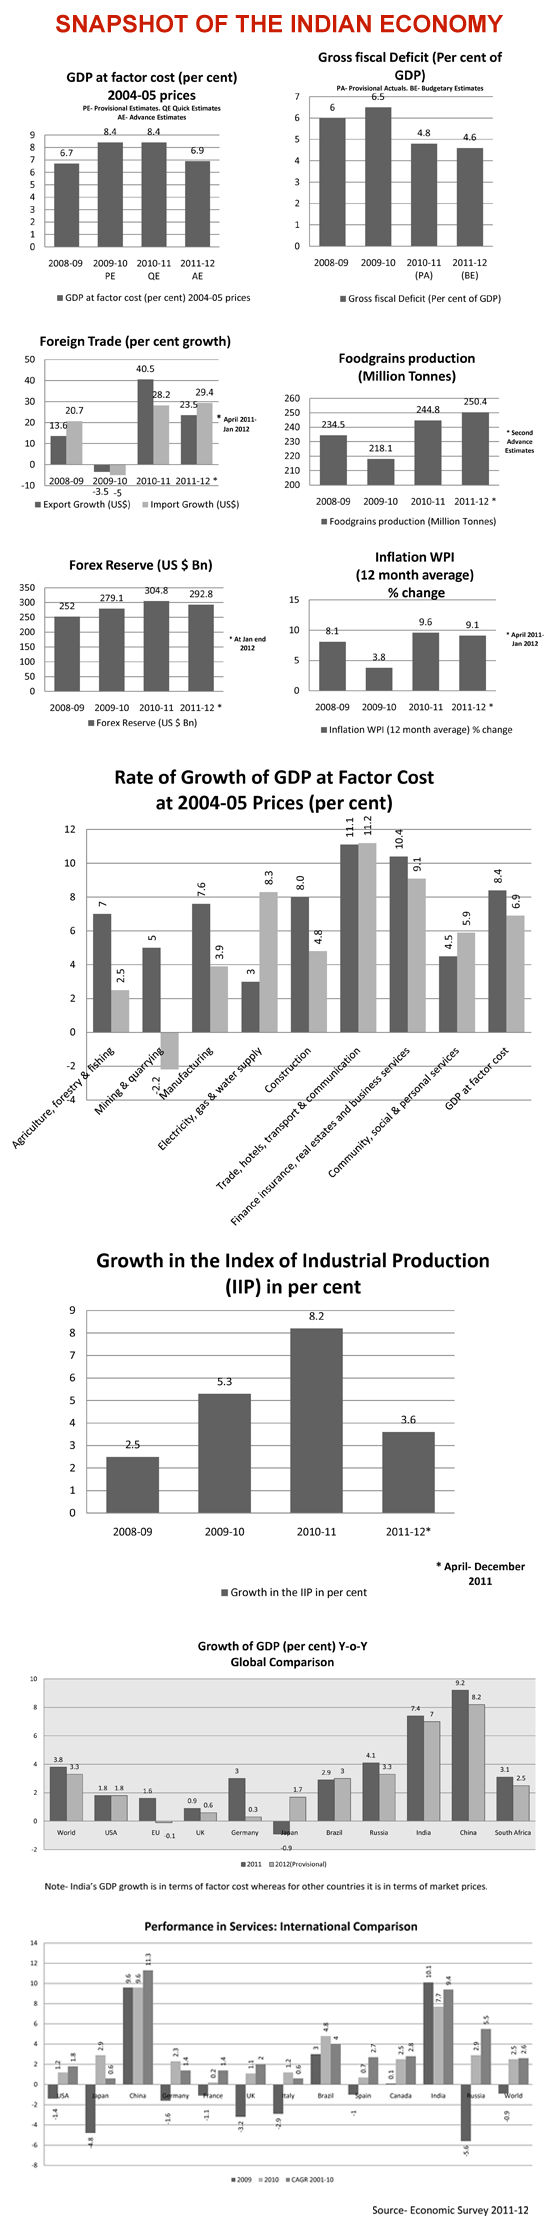 Economic Survey 2012: Snapshot of the Indian Economy